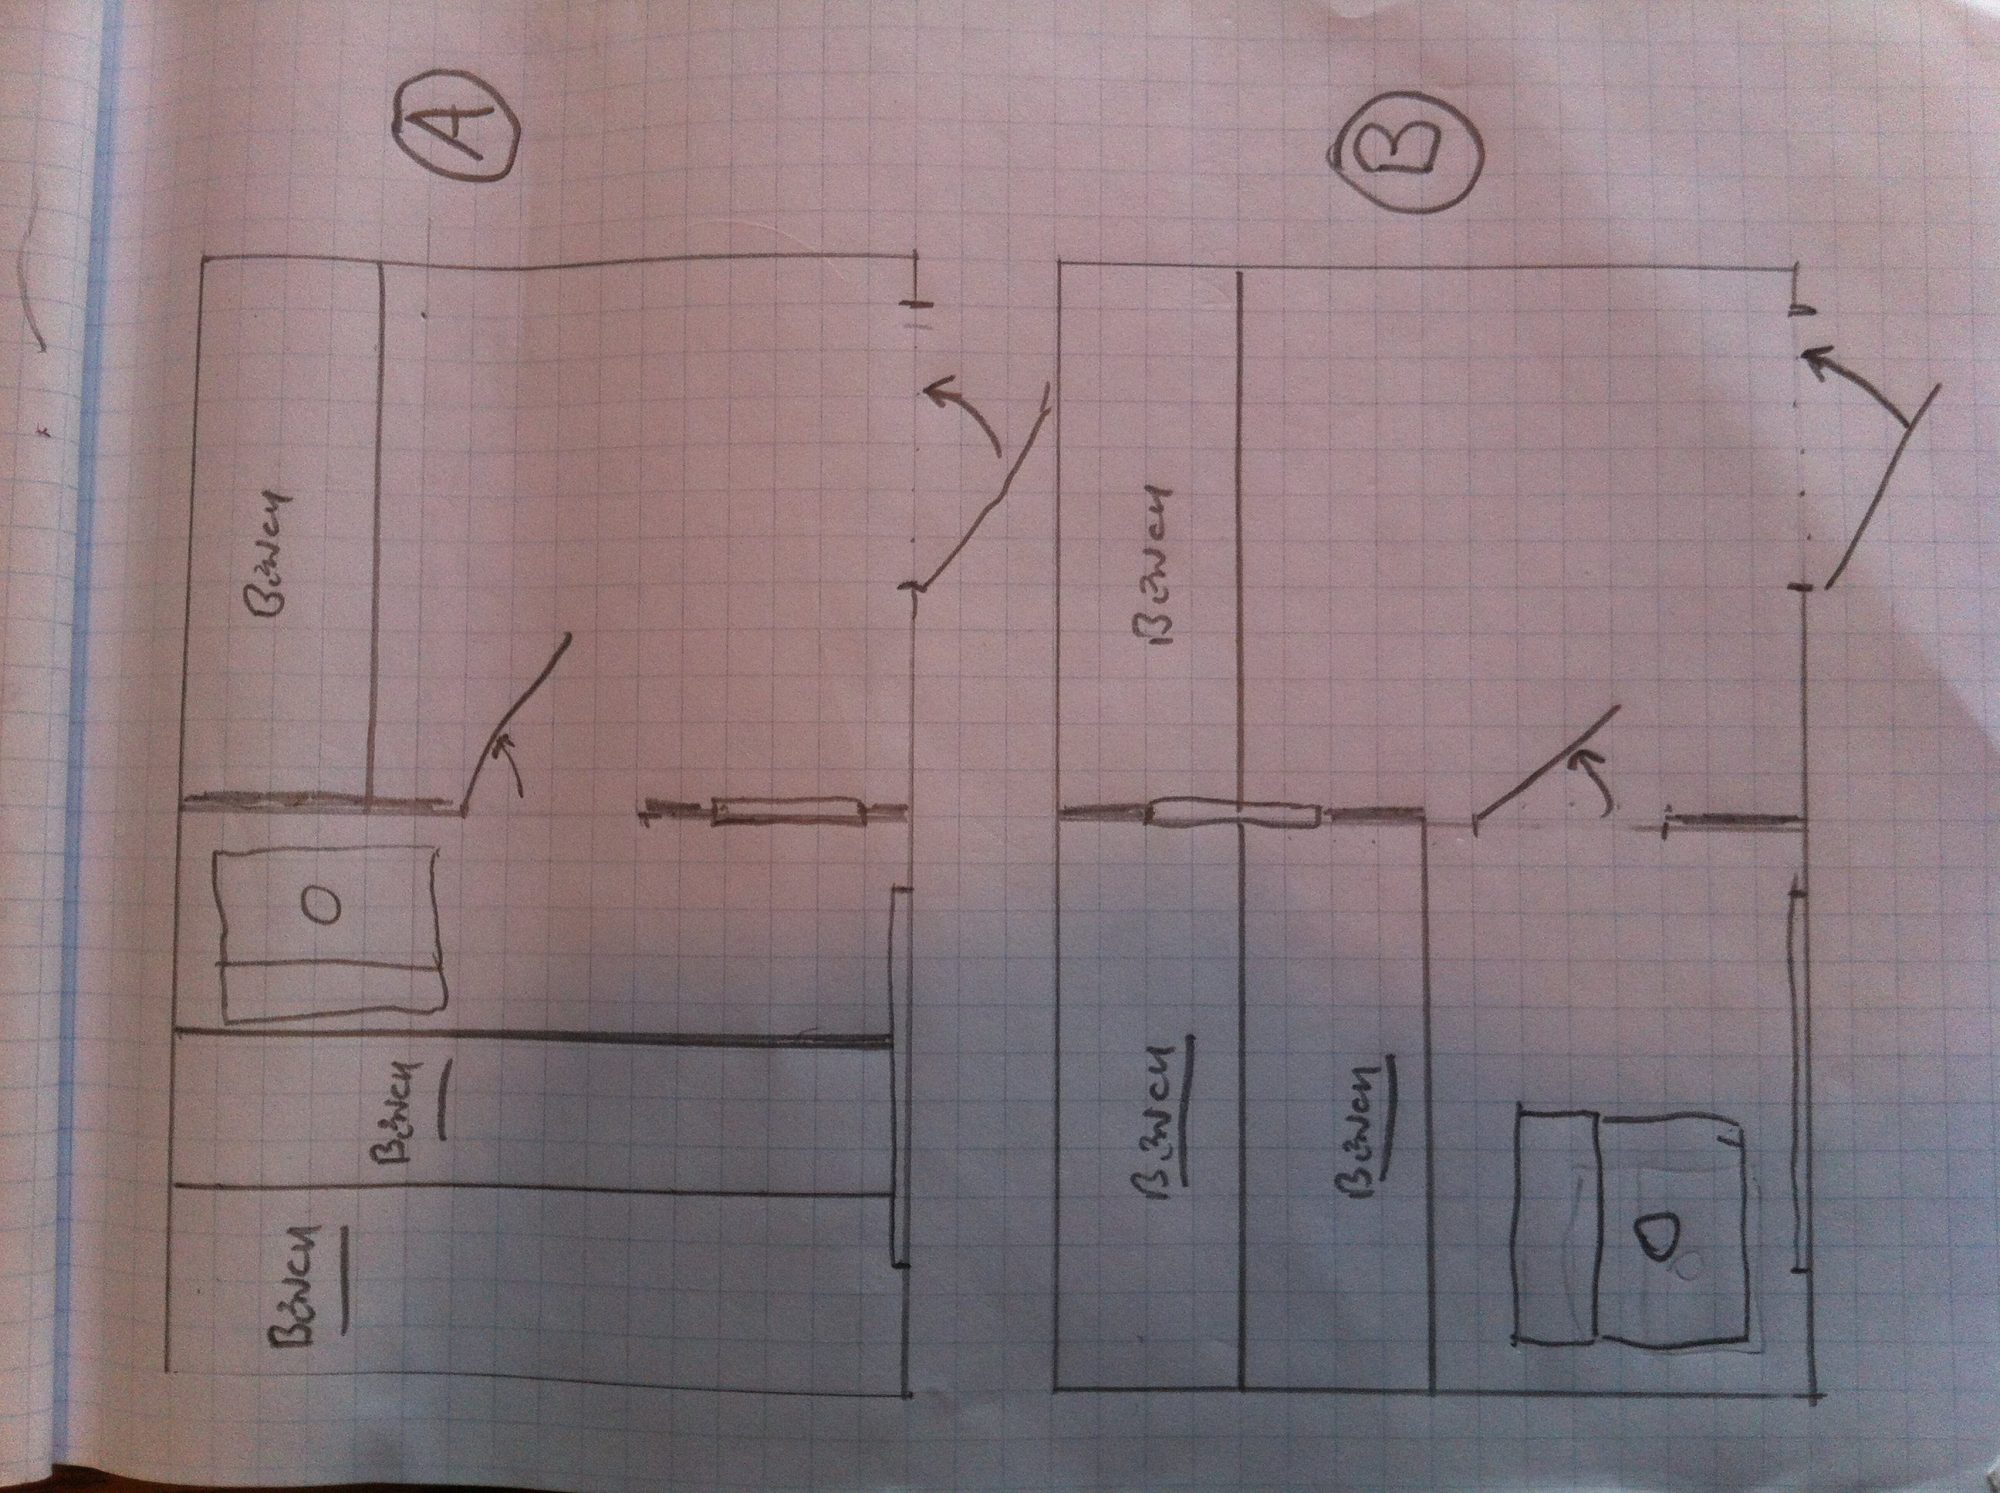 hight resolution of shed diagram 8x12